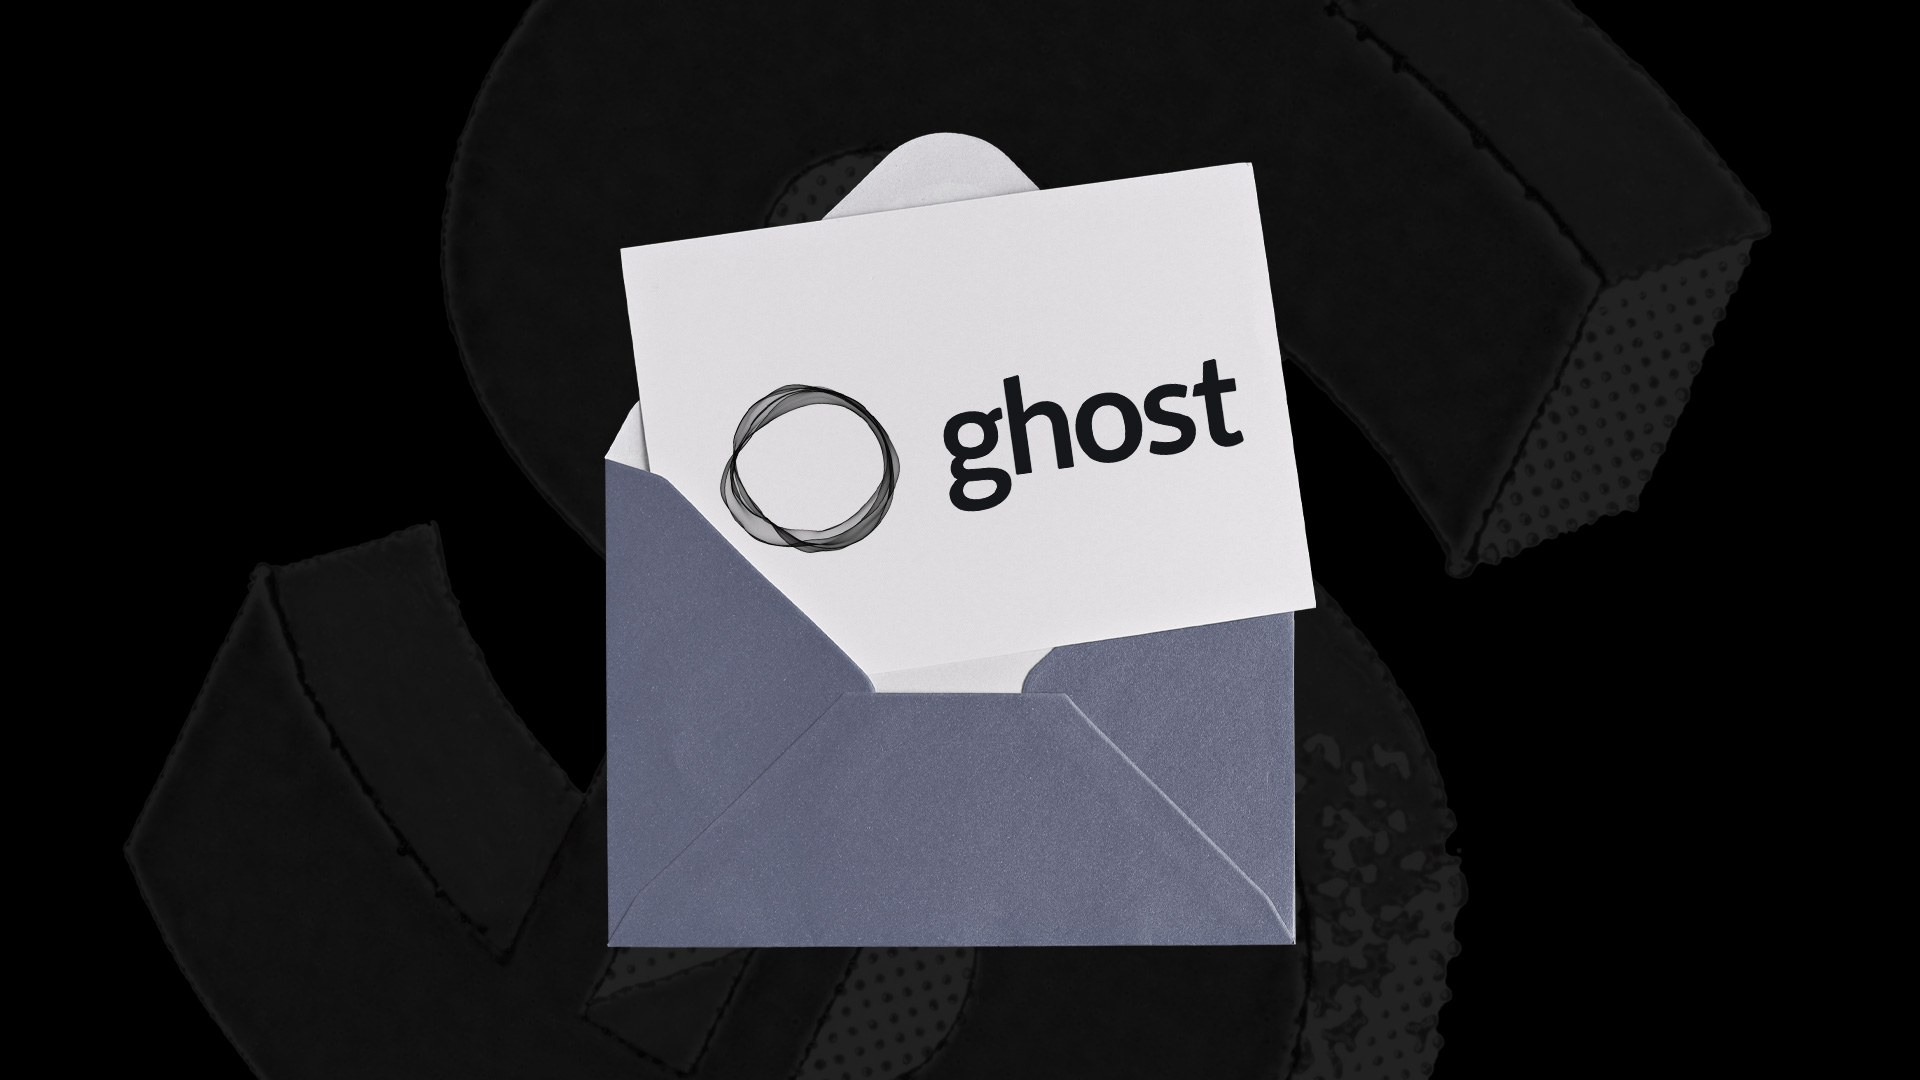 an open envelop partially showing a white piece of paper with the word ghost on it